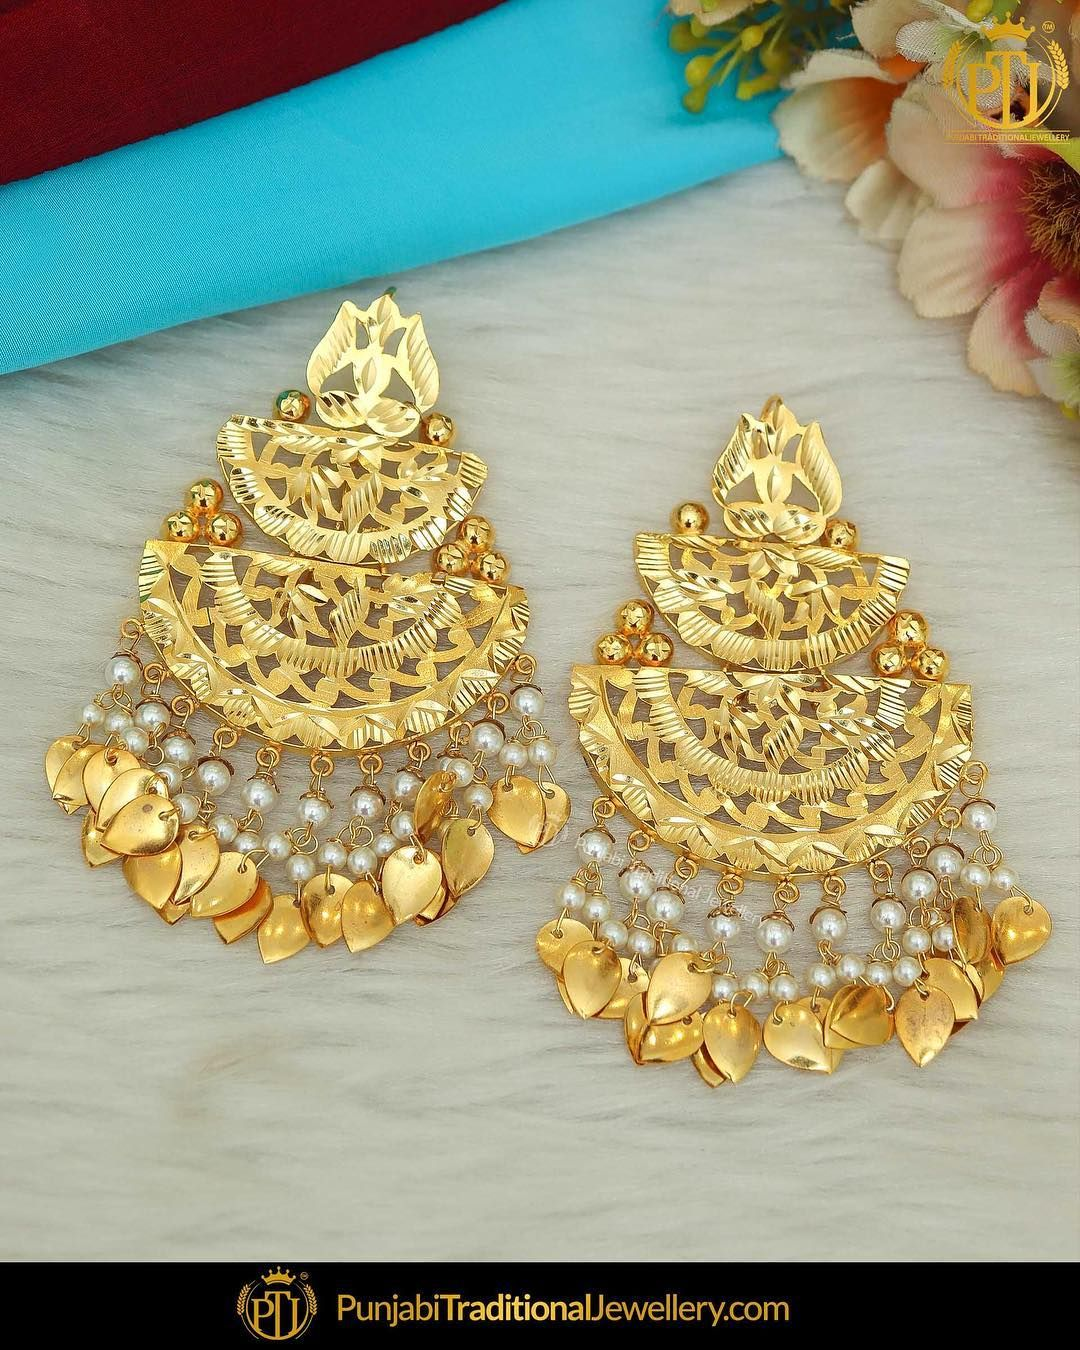 4,462 Likes, 48 Comments Punjabi Traditional Jewellery